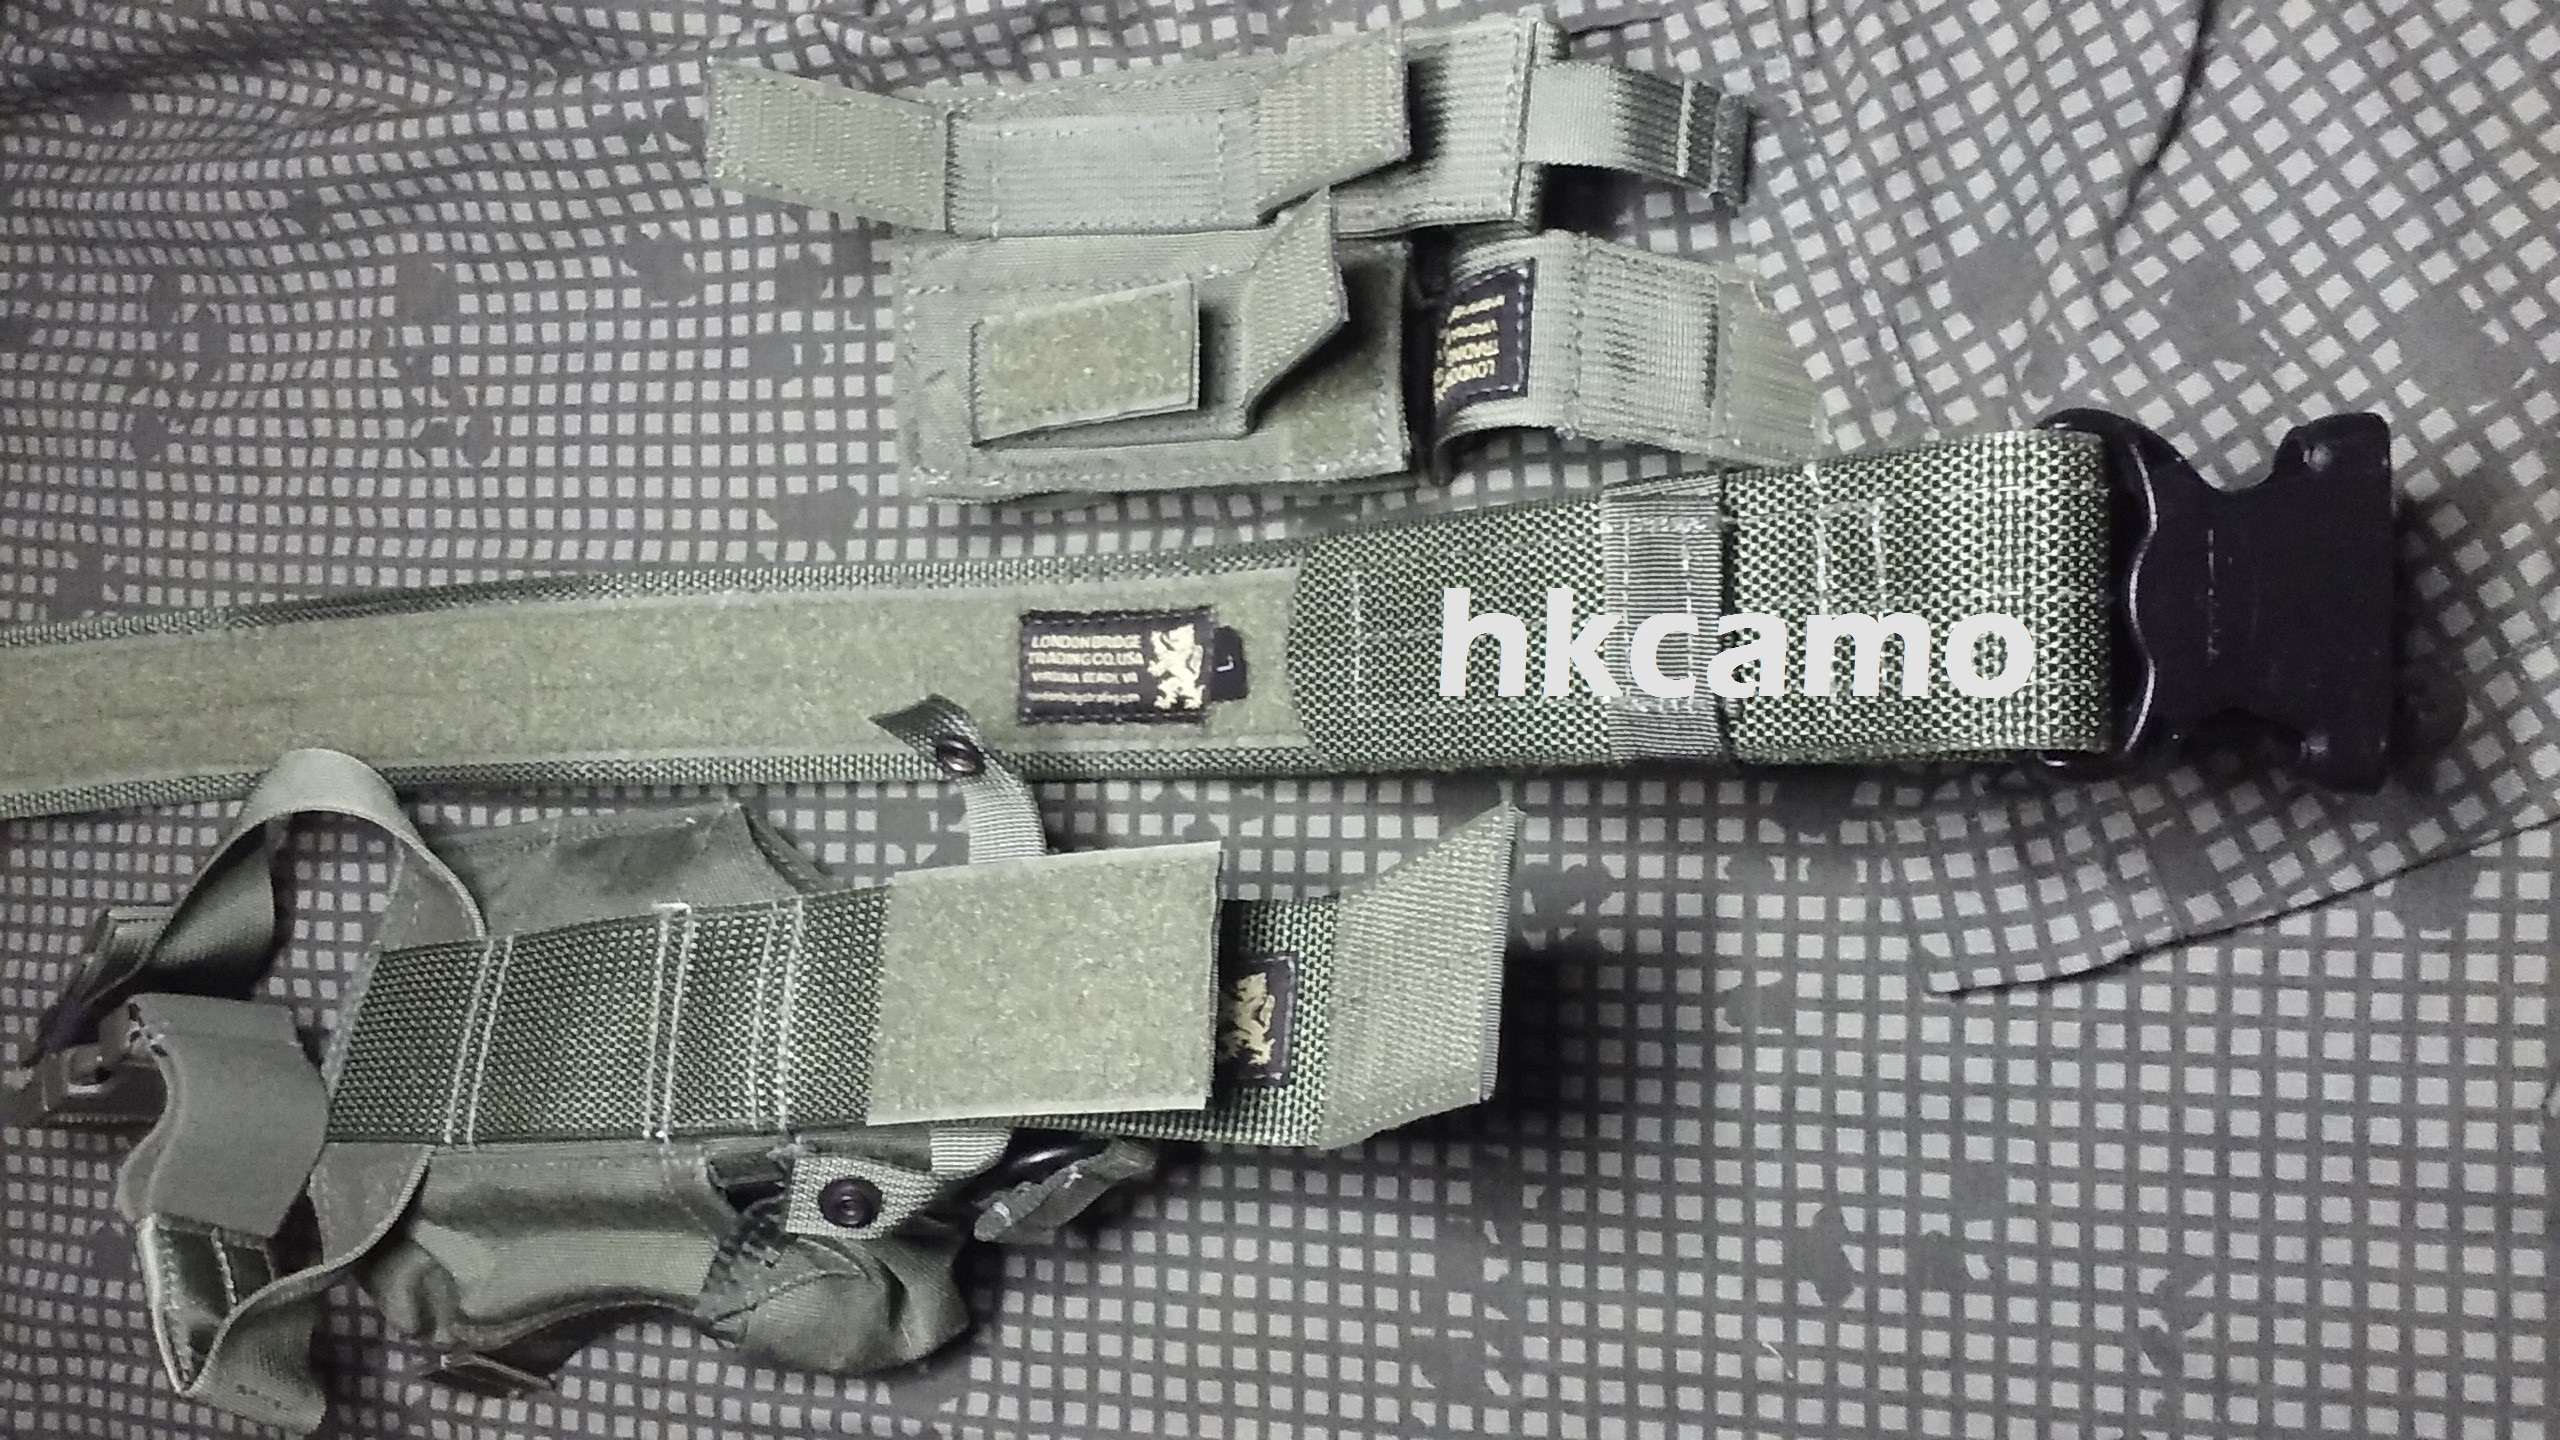 London Bridge Trading Co LTD MAS Grey H&K 416 417 MP7 MK24 HK45CT Operator Kit (Rare)-b.jpg